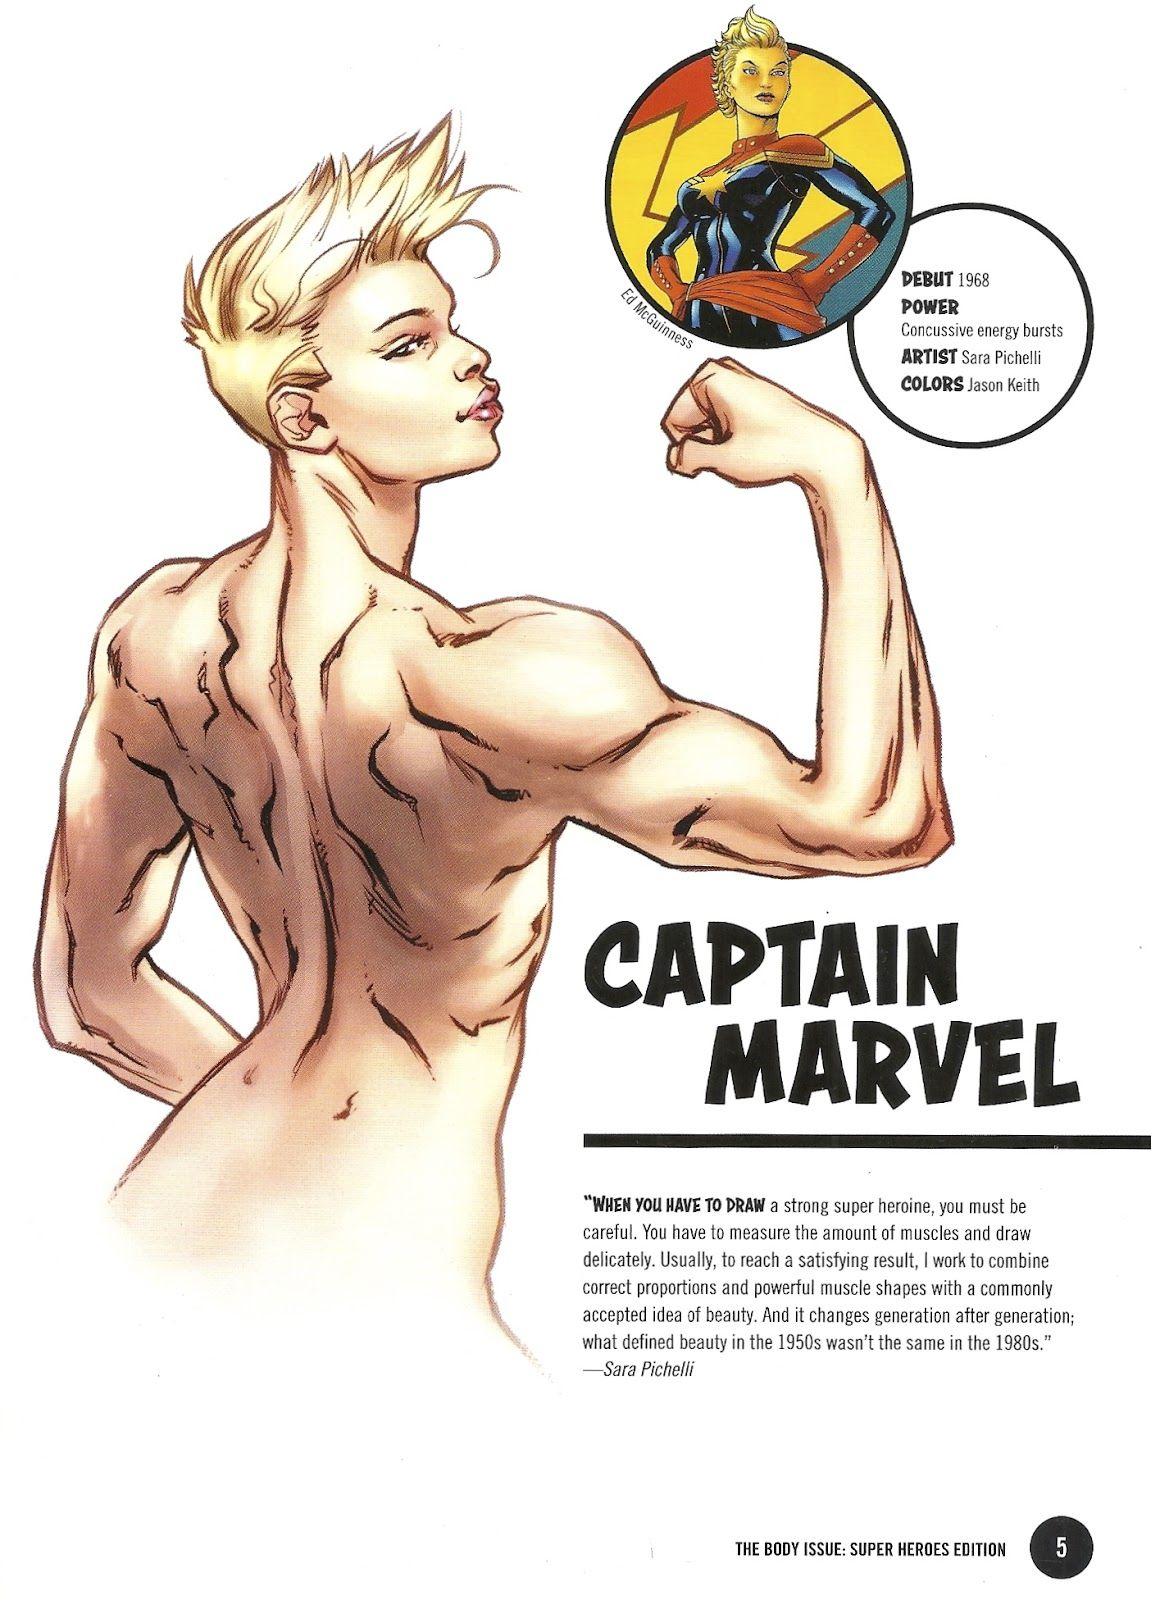 Carol Danvers drawn without their breasts appearing in any way ...